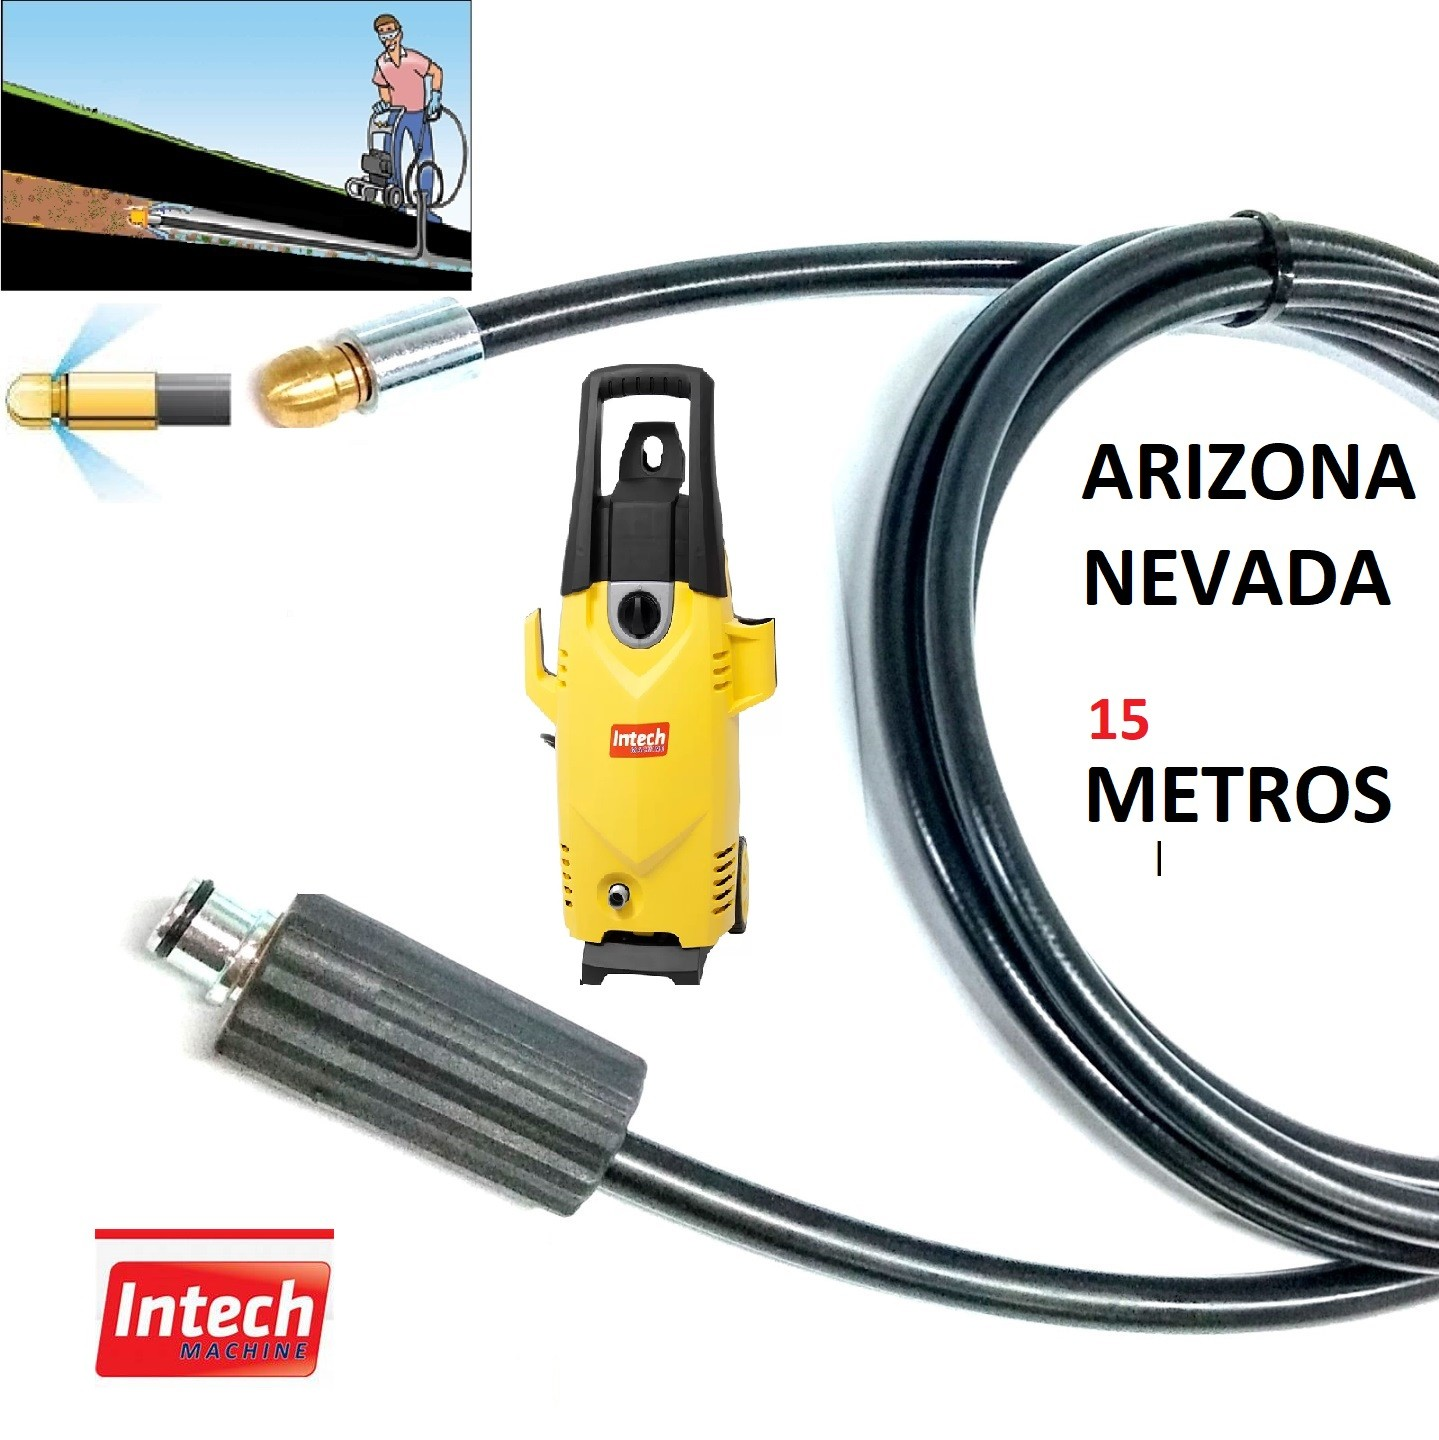 Mangueira Desentupidora Esgoto 15 Metros ARIZONA,NEVADA Intech Machine